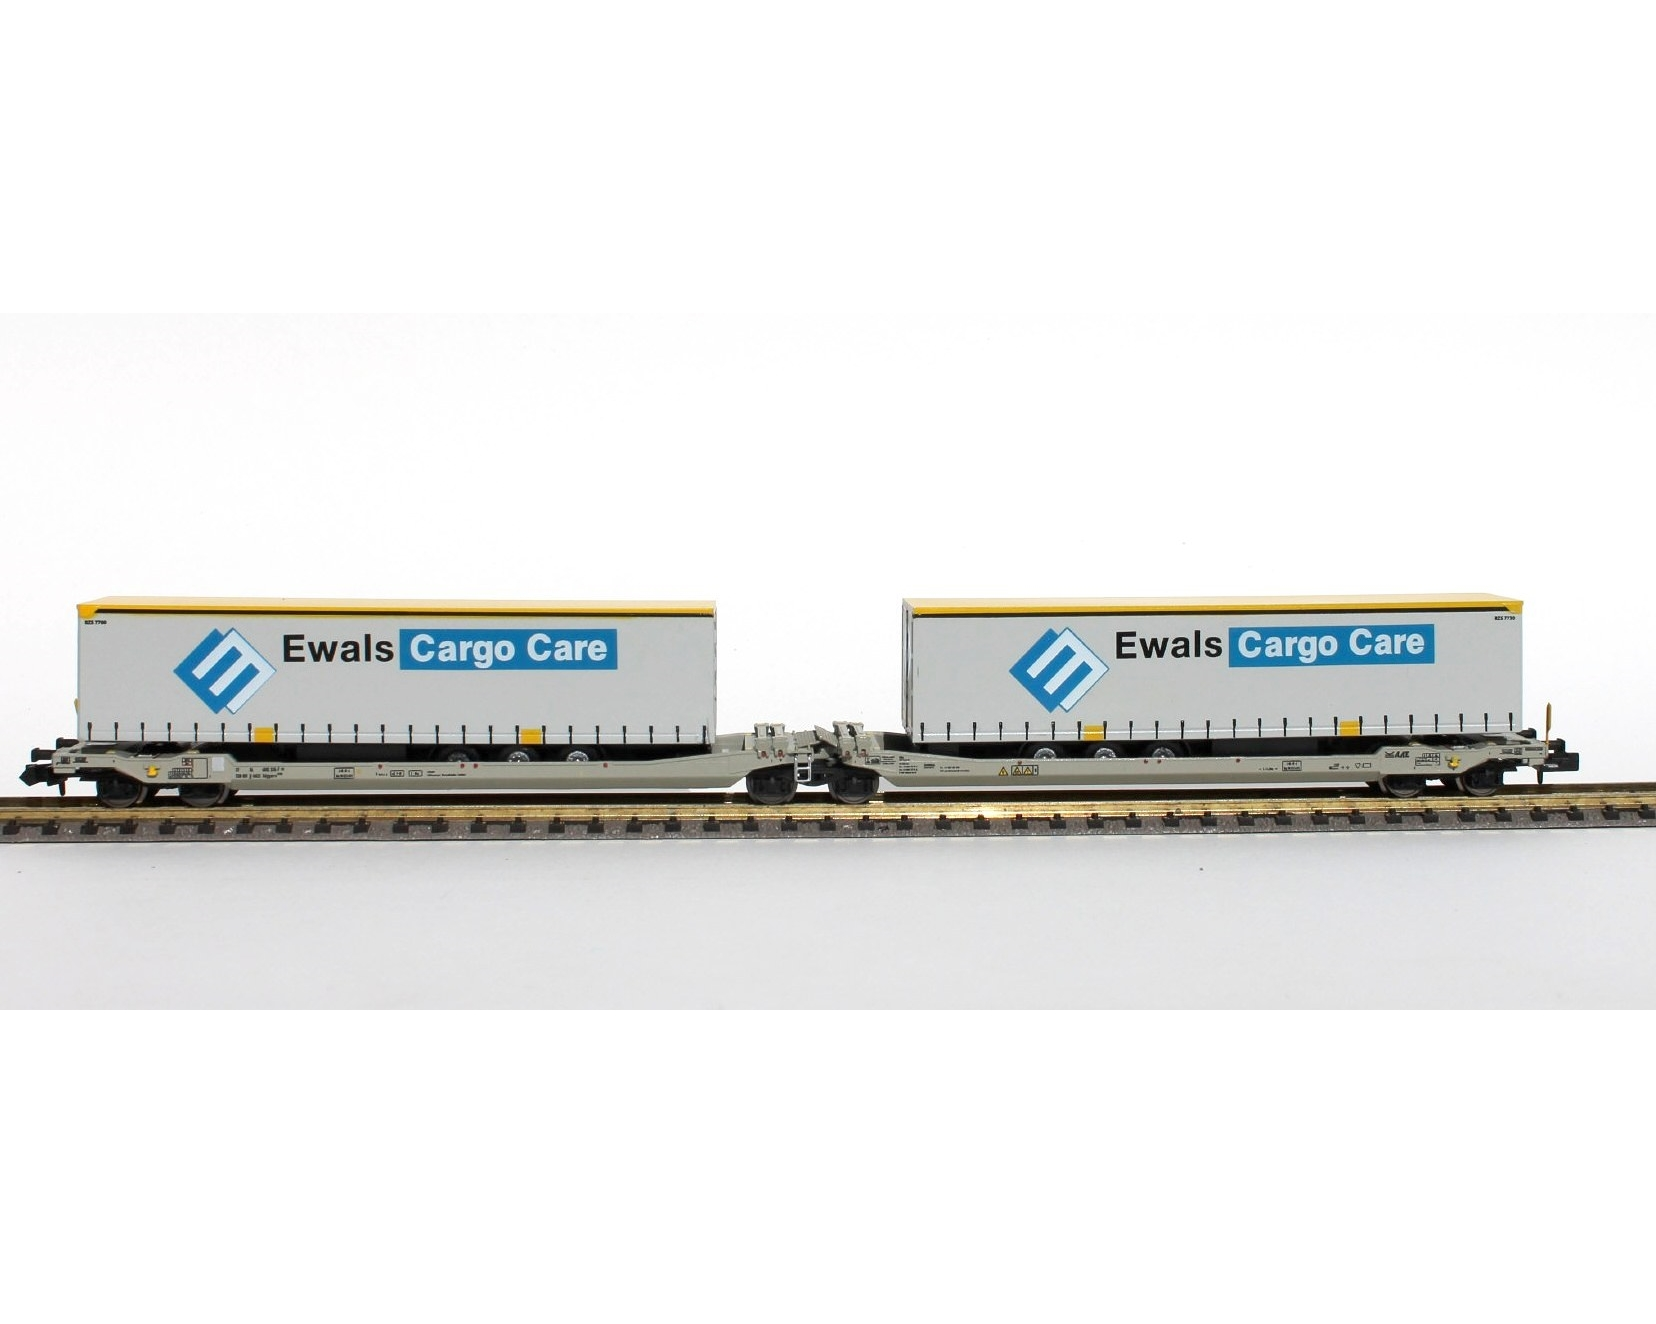 Twin car Crossrail 2x Ewals Cargo Care